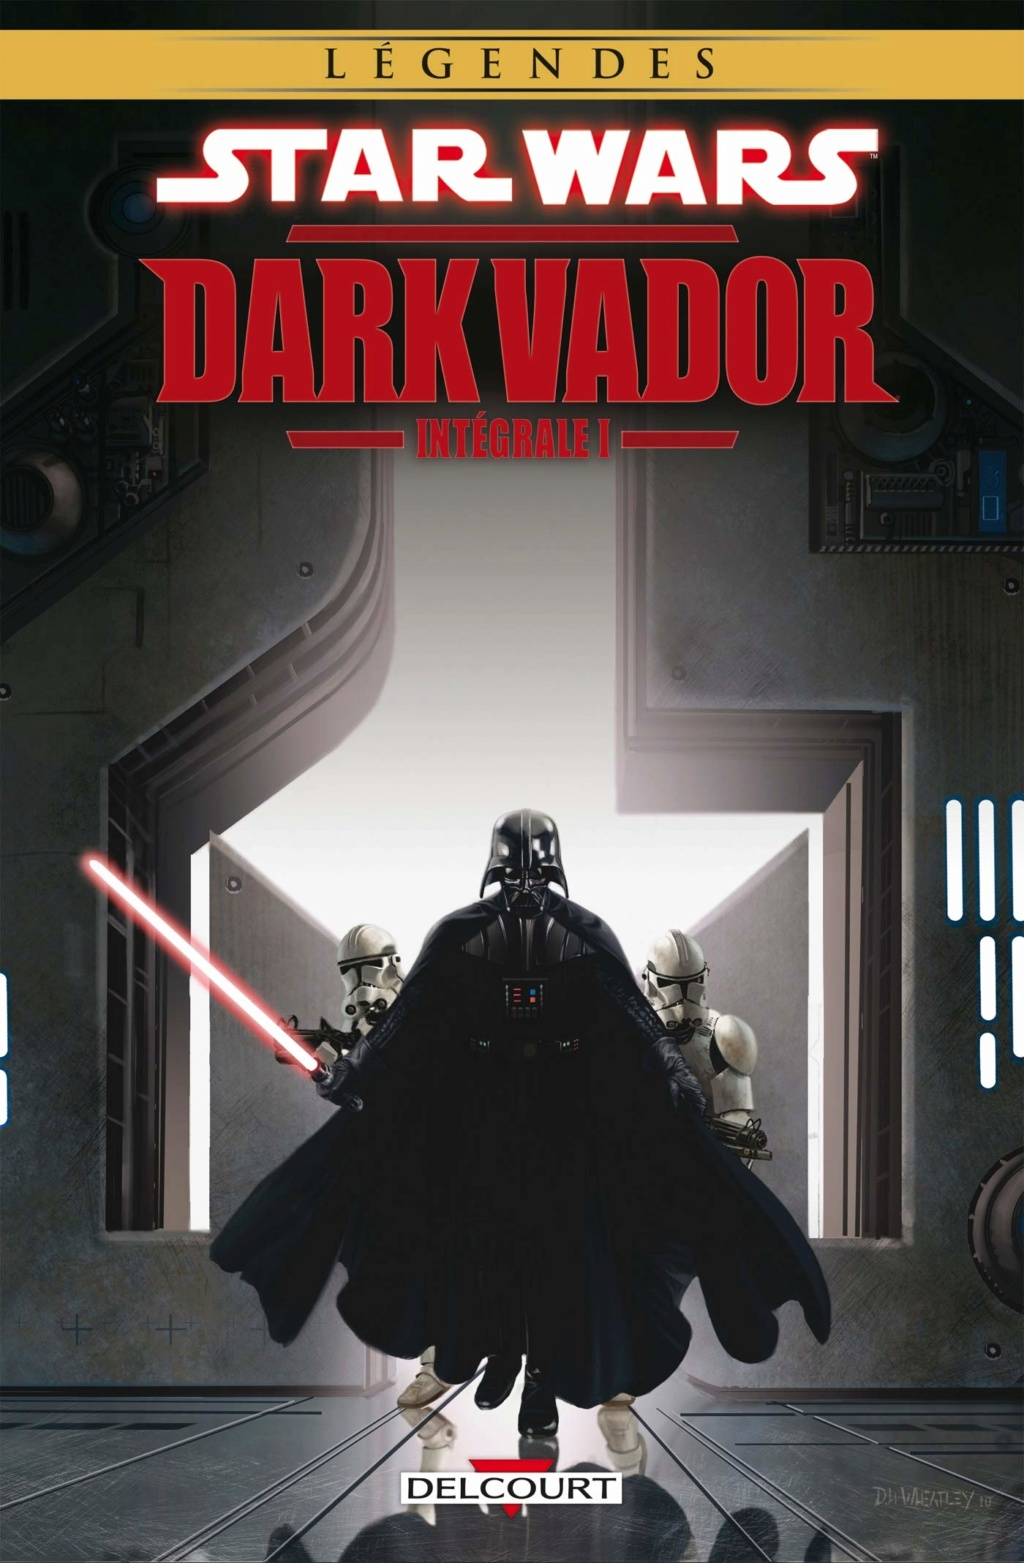 Star Wars - Dark Vador Intégrale Volume I - DELCOURT Dark_v11